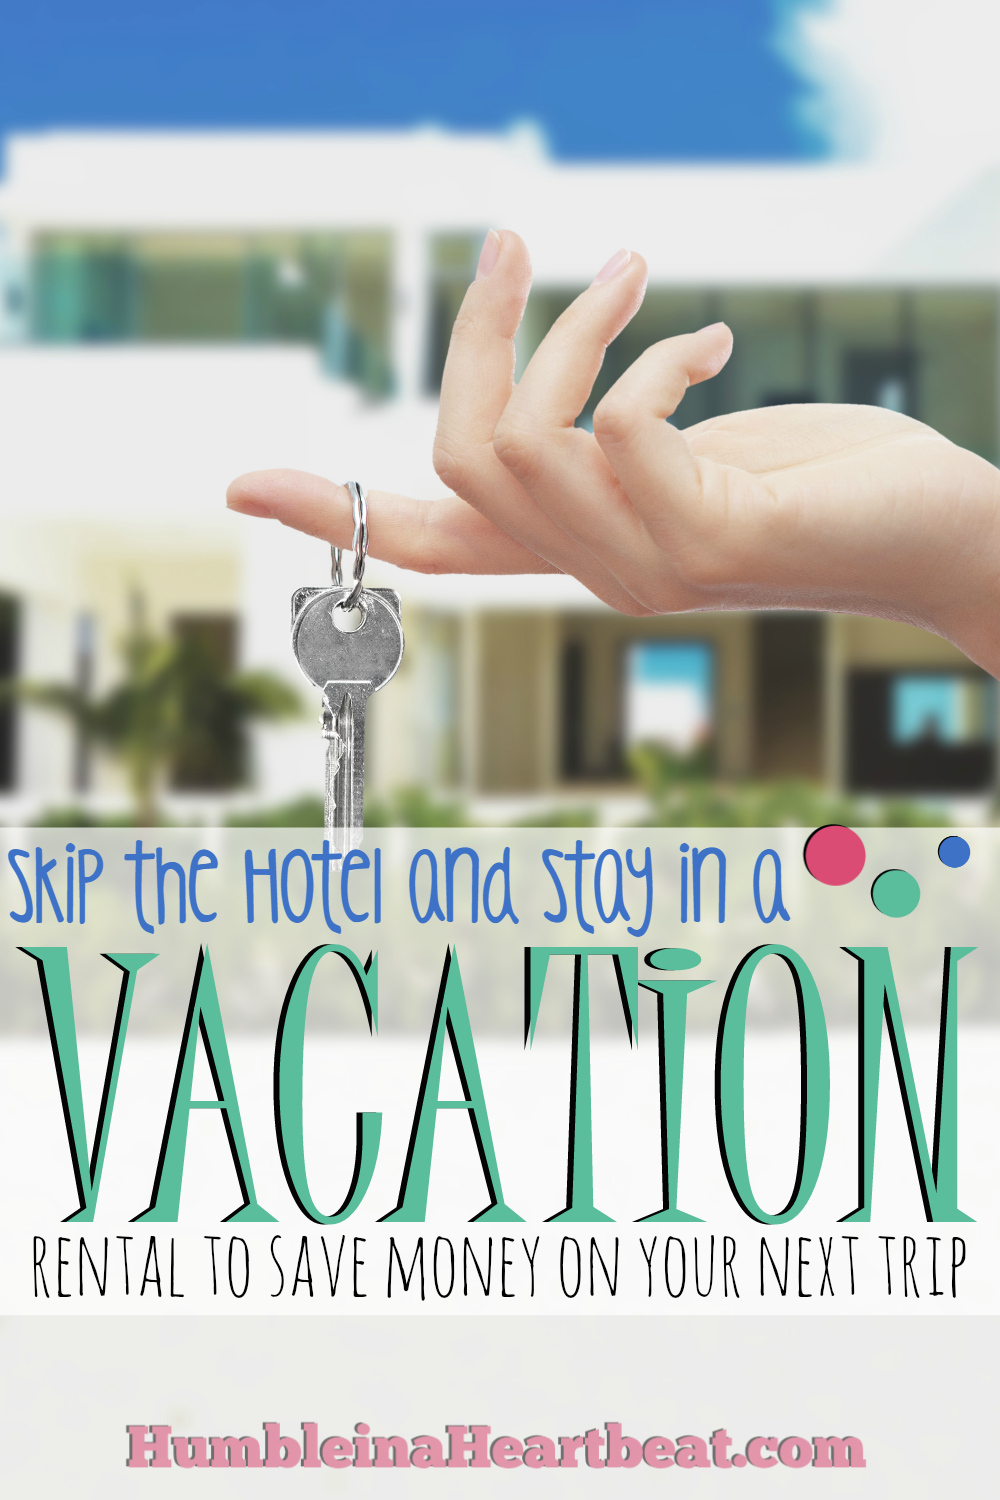 If you enjoy traveling, but you don't enjoy spending lots of money, look for a vacation rental and see if you can't save. They can be more affordable than staying at a hotel and they're so much more comfortable!